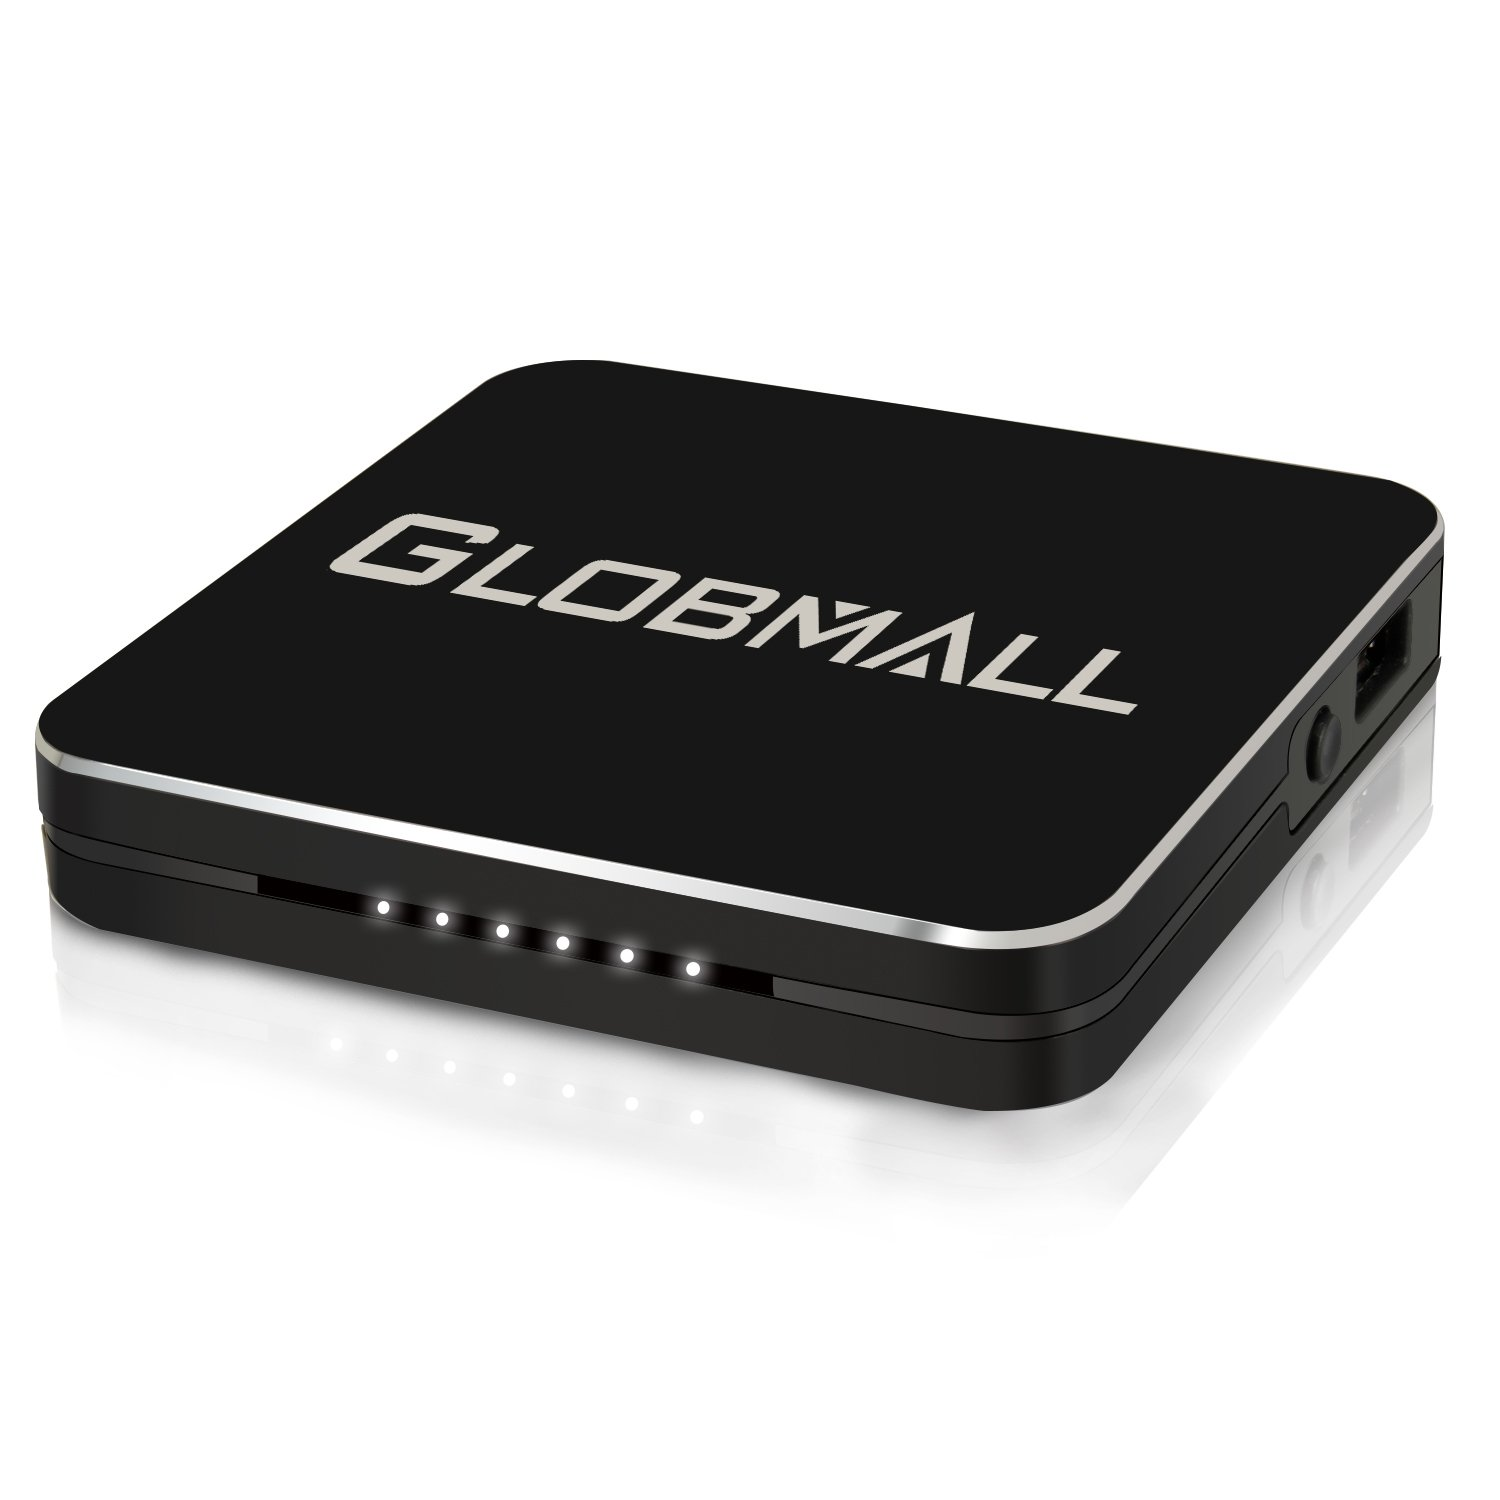 Globmall Game Capture HD, HDMI Video Capture 1080P, Game Recorder Device for PlayStation 4, Xbox One/360, Nintendo Switch and Wii U etc, Support Microphone Input